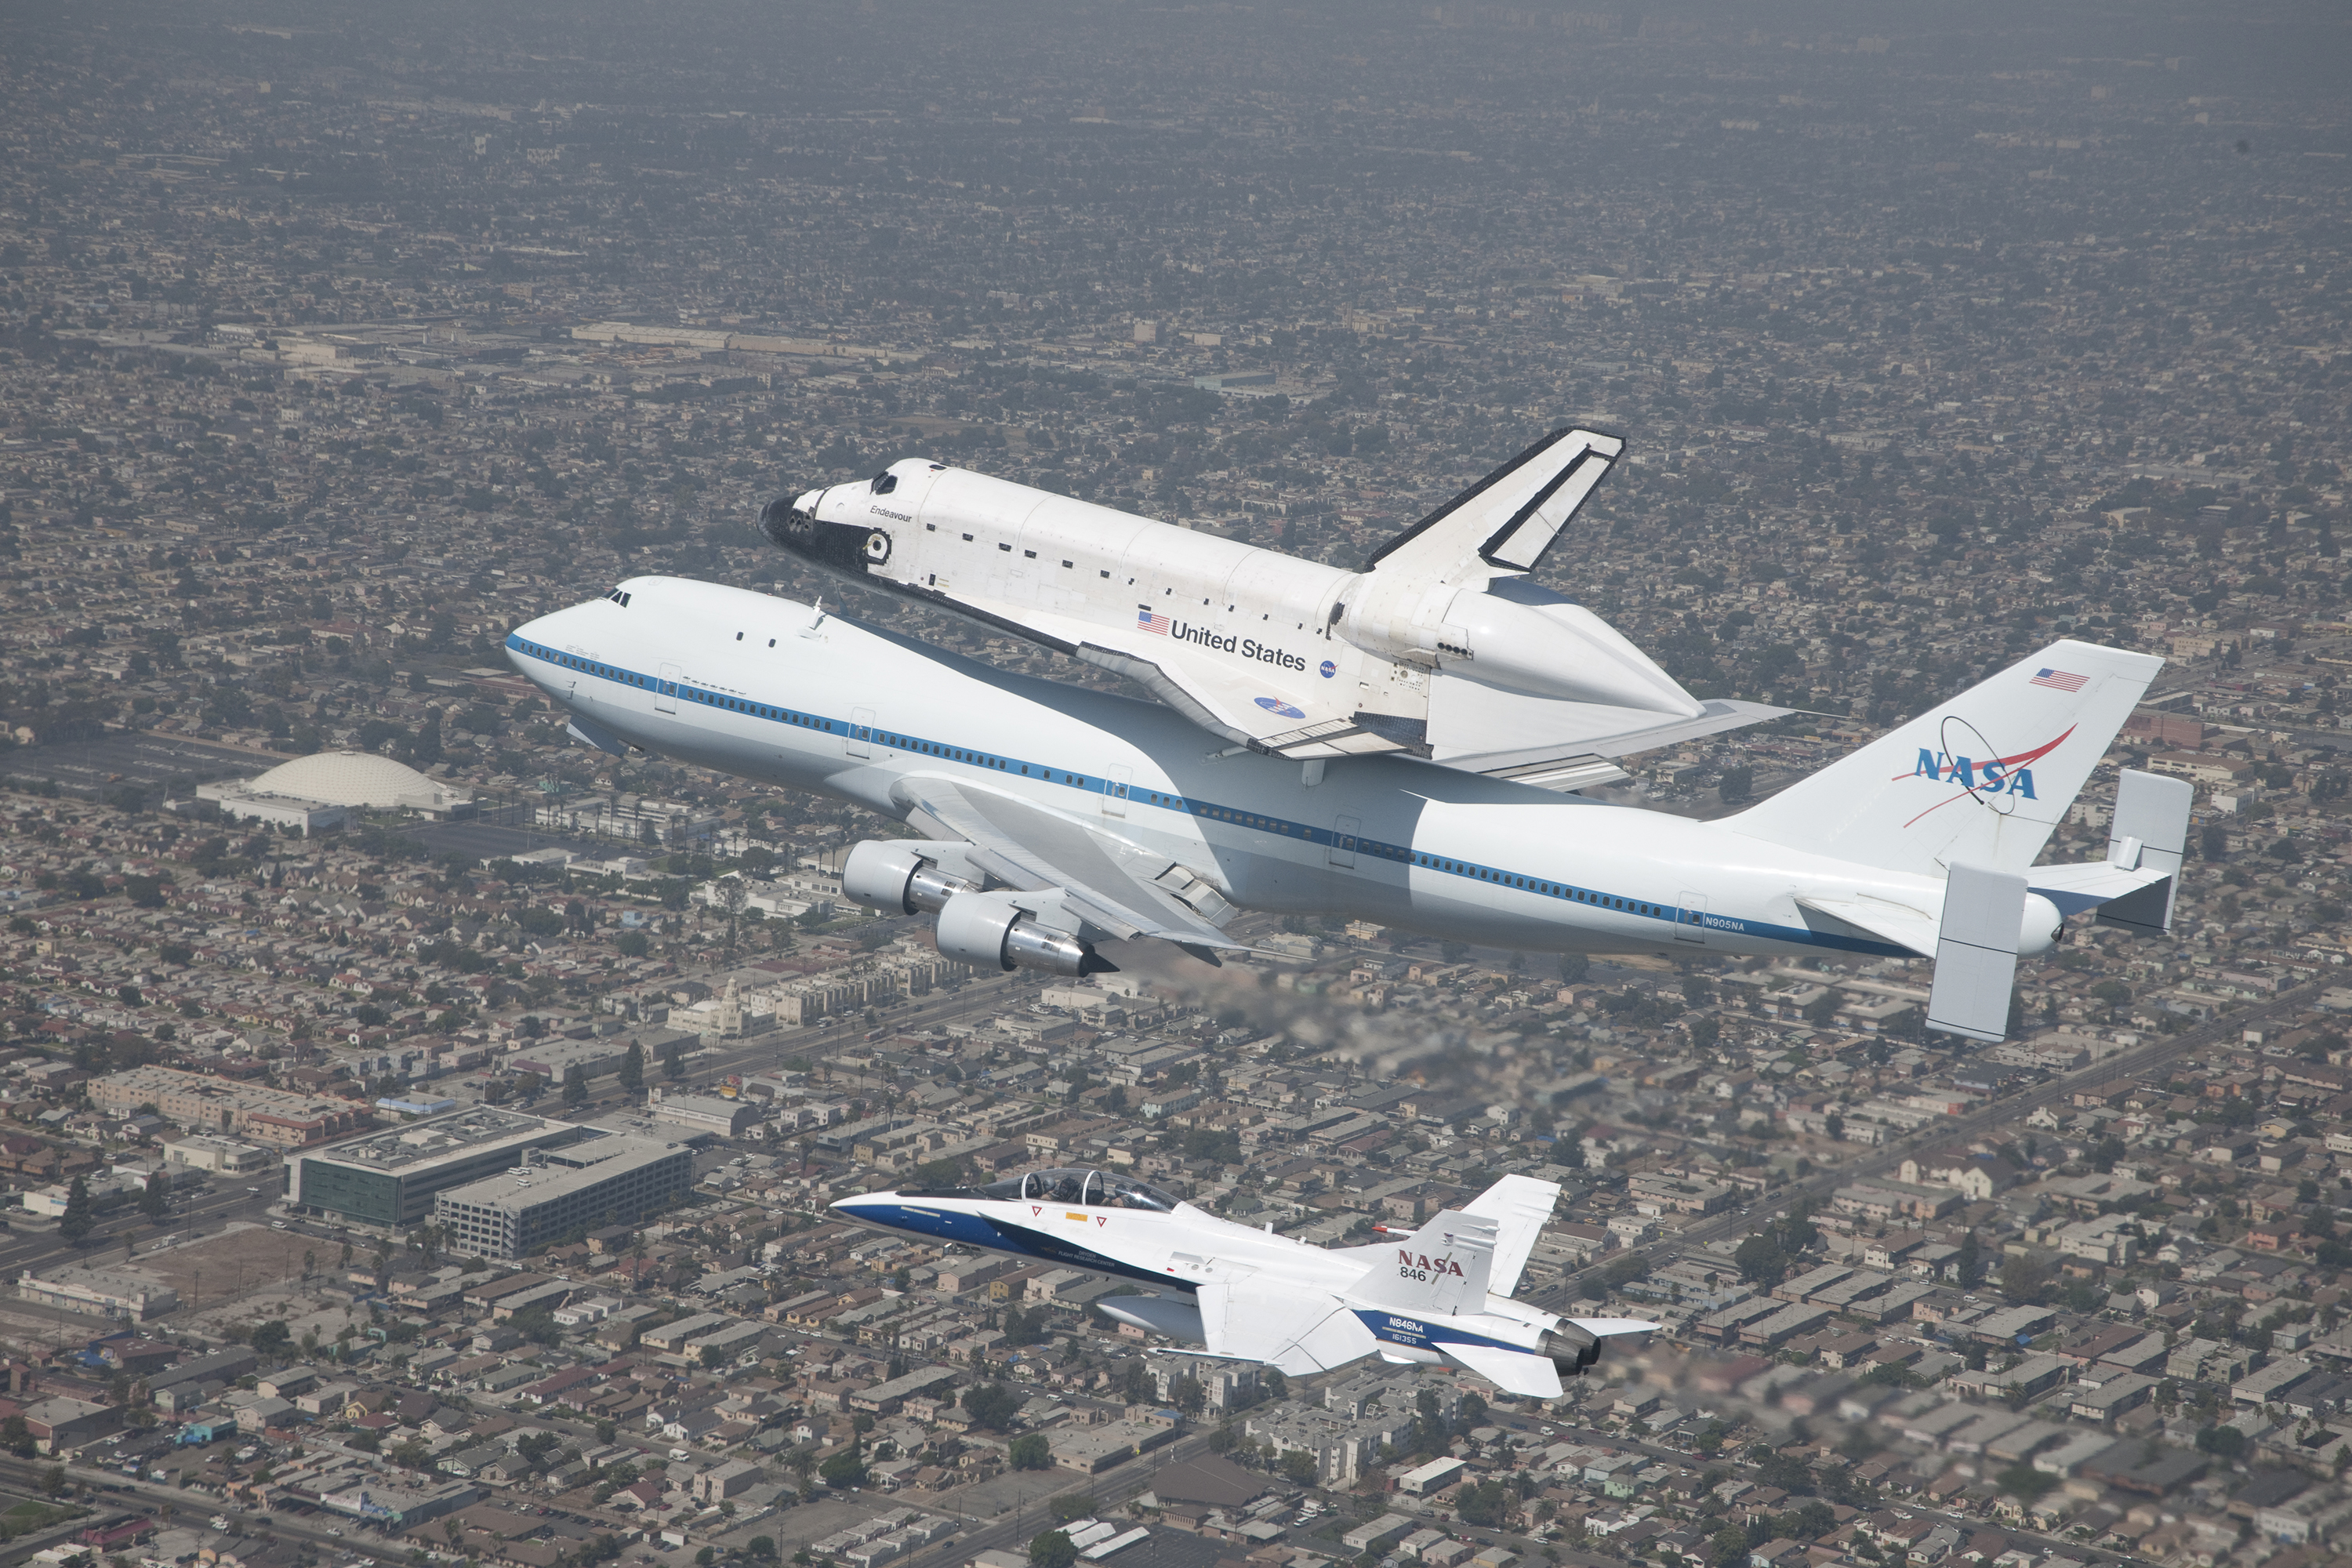 helius lighting group. space shuttle endeavour is affixed atop nasau0027s 747 carrier aircraft helius lighting group